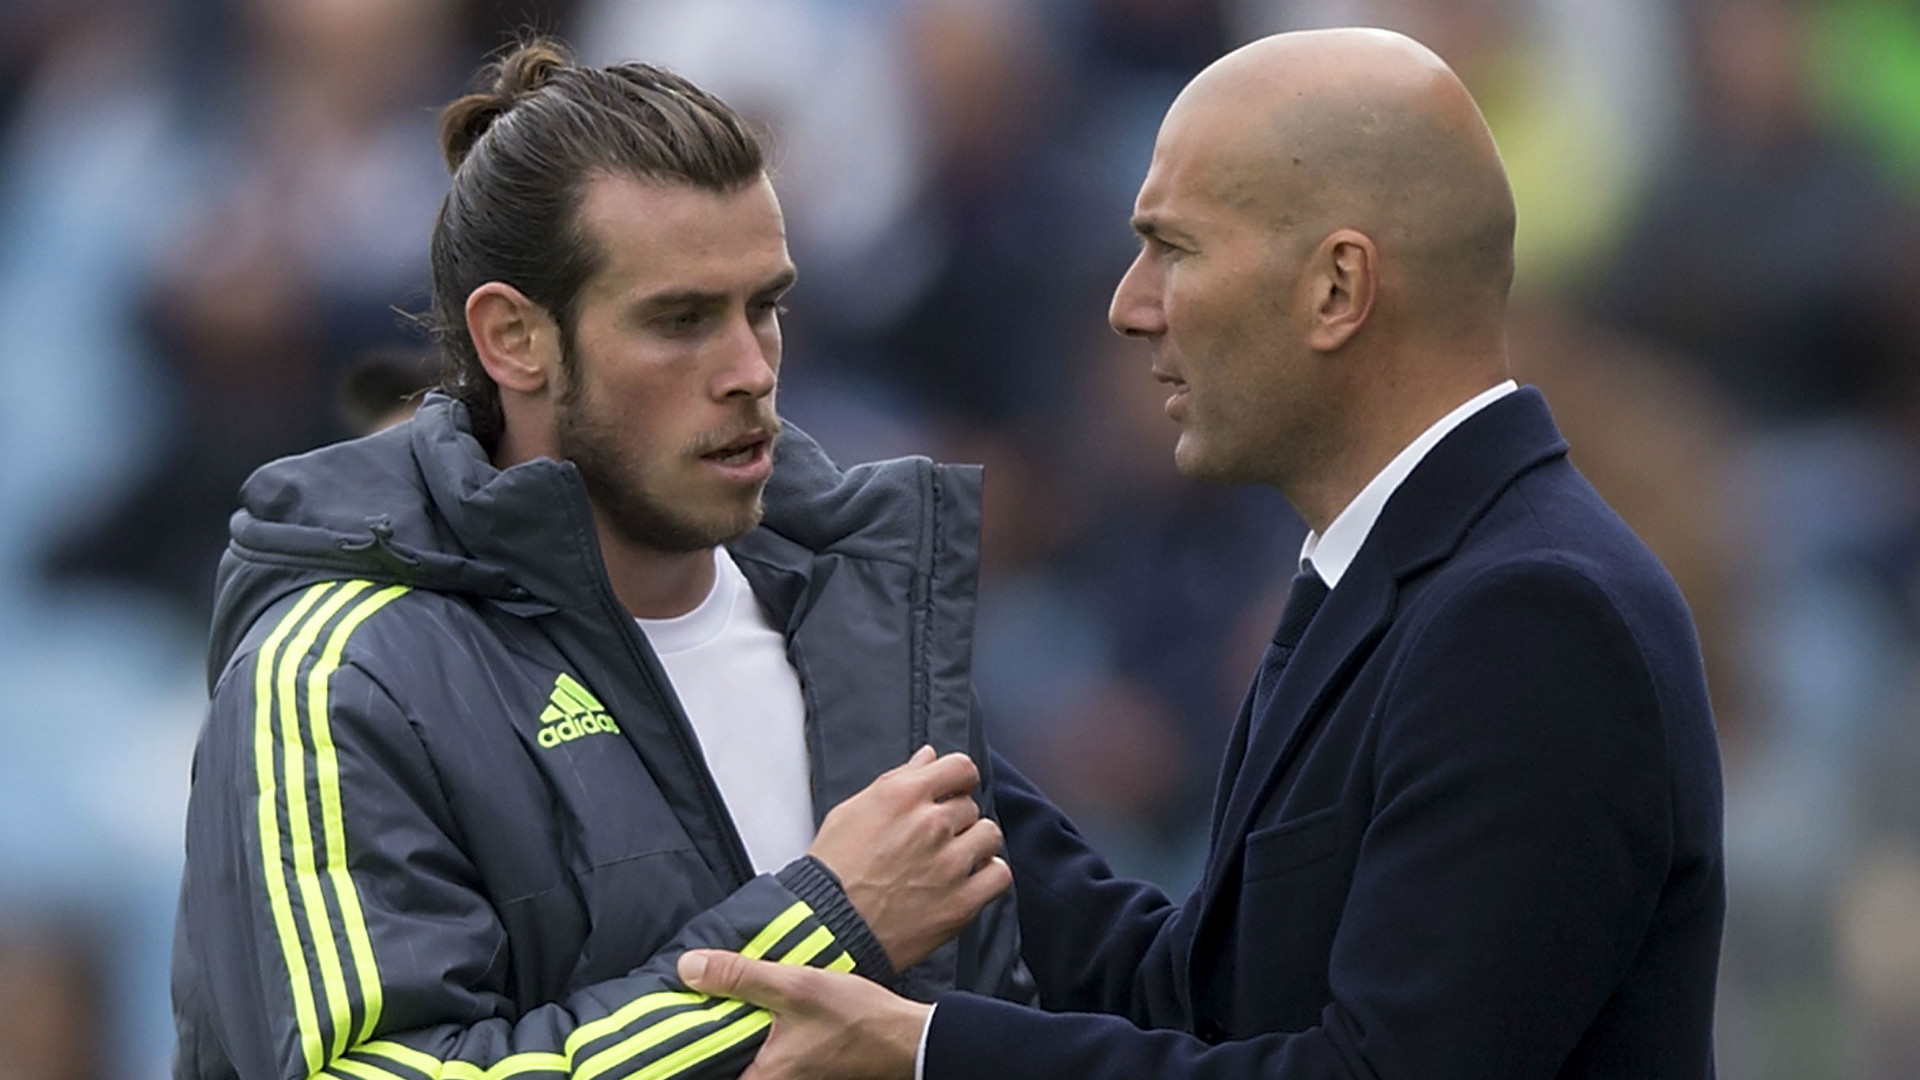 Gareth Bale's agent responds to exit links at Real Madrid